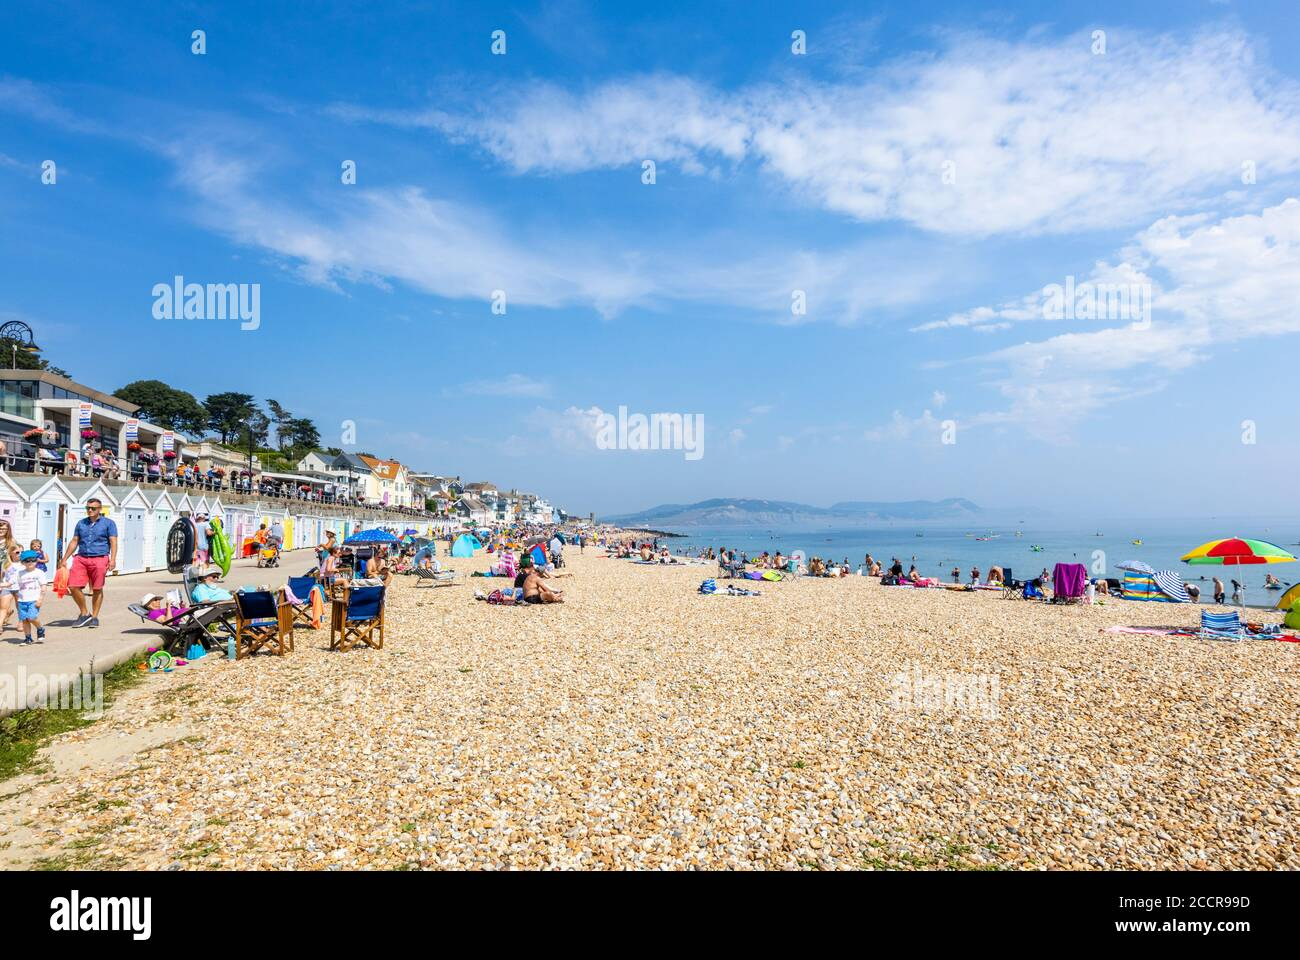 The stony beach and seafront in high season at Lyme Regis, a popular seaside holiday resort on the Jurassic Coast in Dorset, south-west England Stock Photo